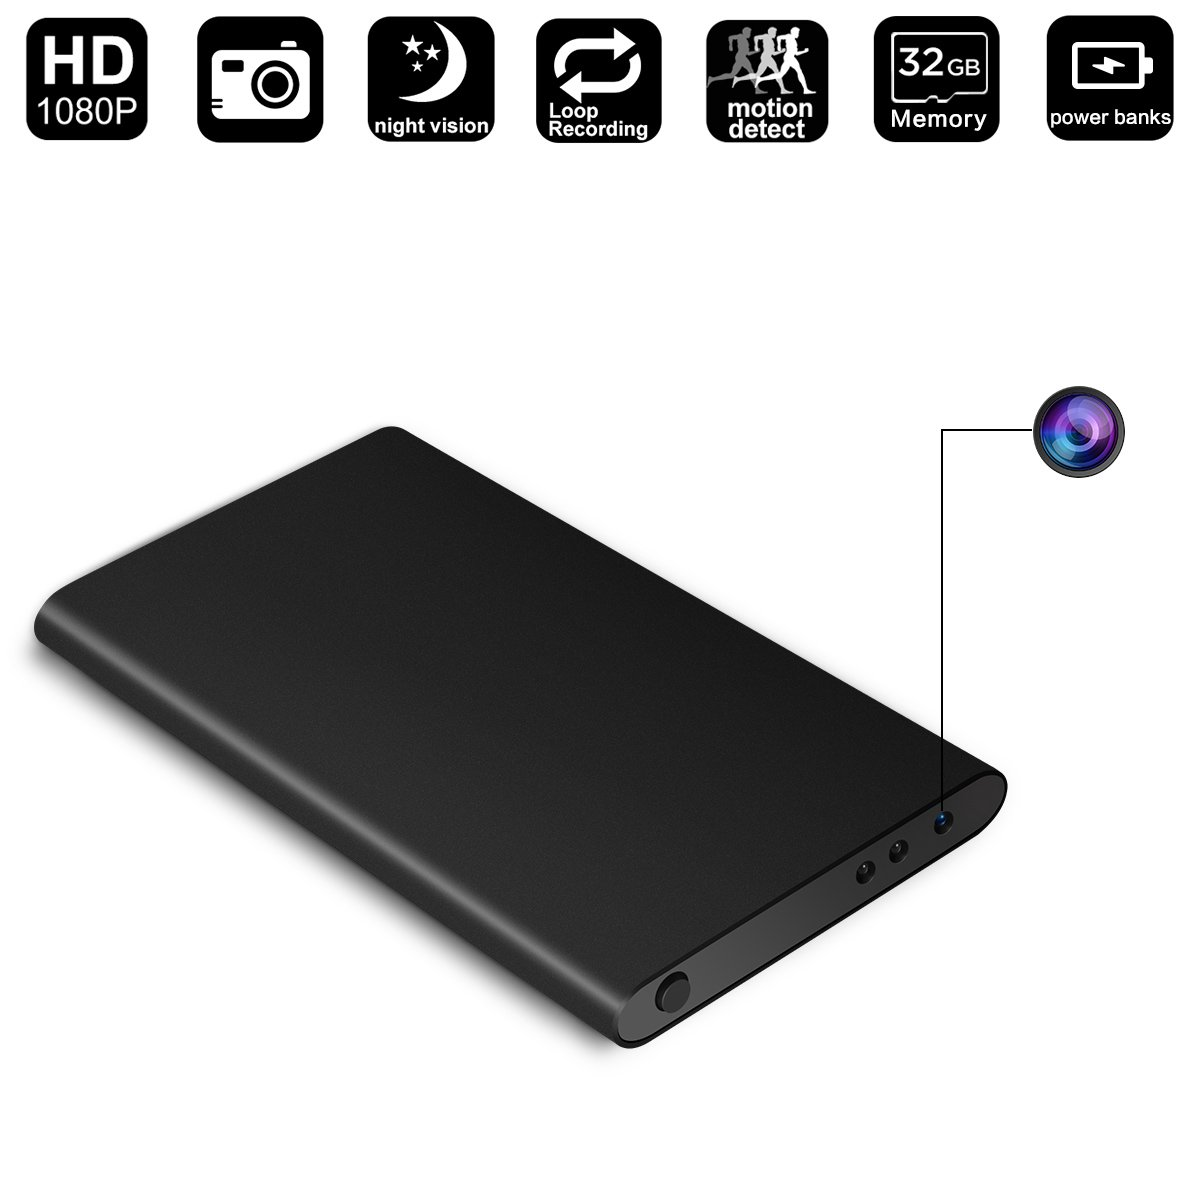 32GB Hidden Camera Power Bank,DigiHero Power Bank with 1080P Hidden Camera - Loop Recording -32GB Memory- Perfect Covert Security Camera for Home and Office - NO WIFI(INCLUDE 32GB TF CARD)